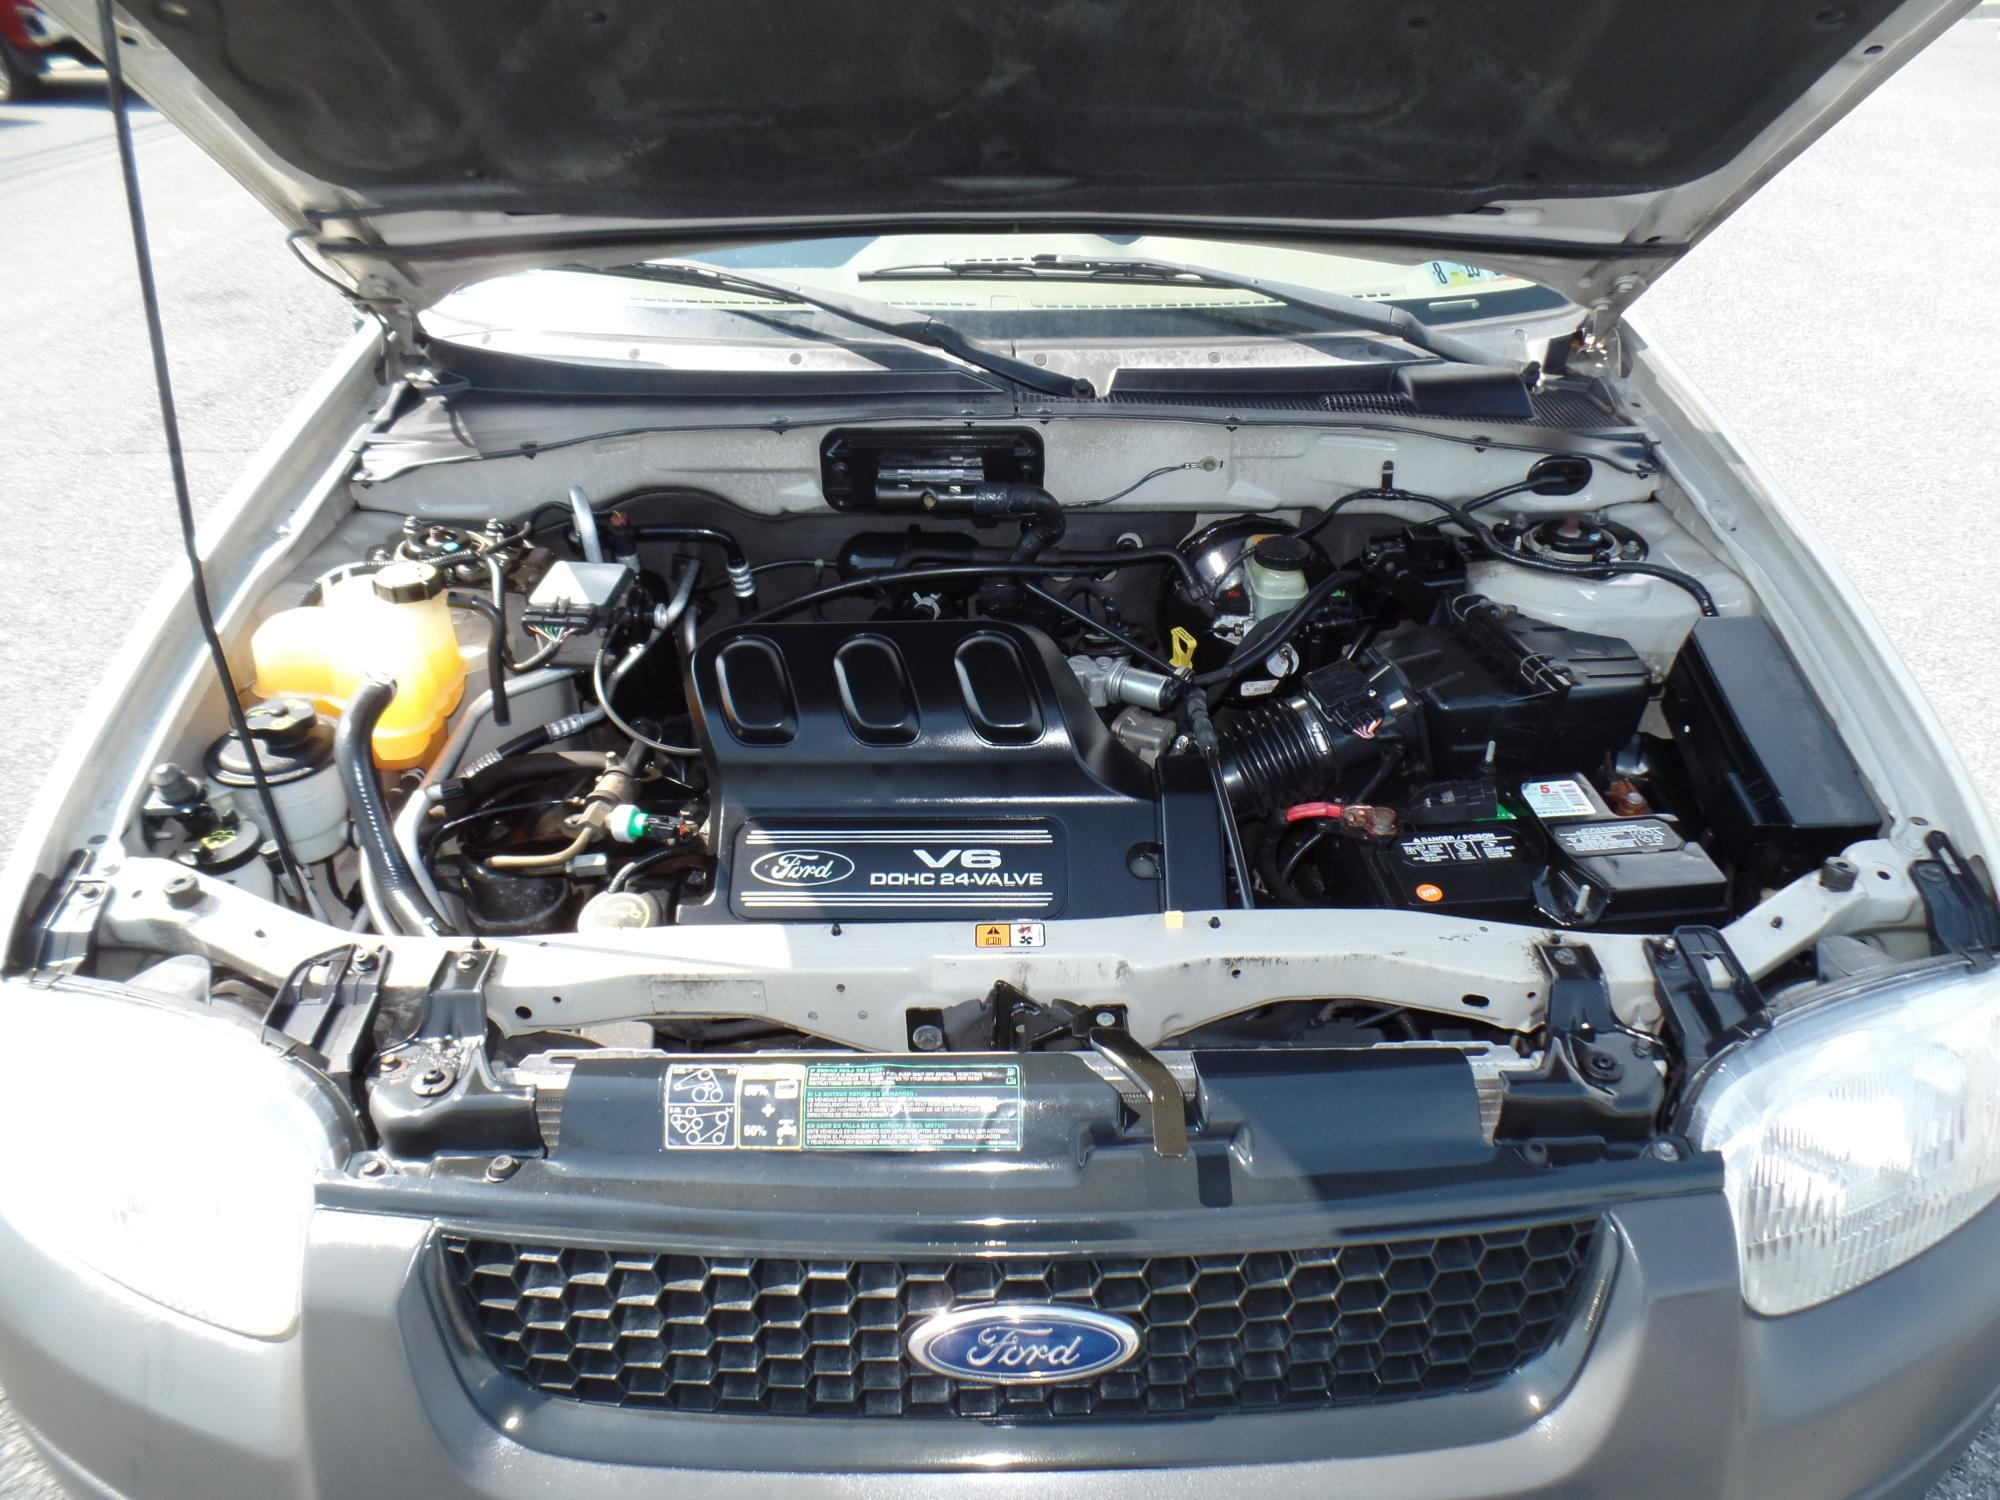 2003_Ford_Escape_A25738__10_.JPG